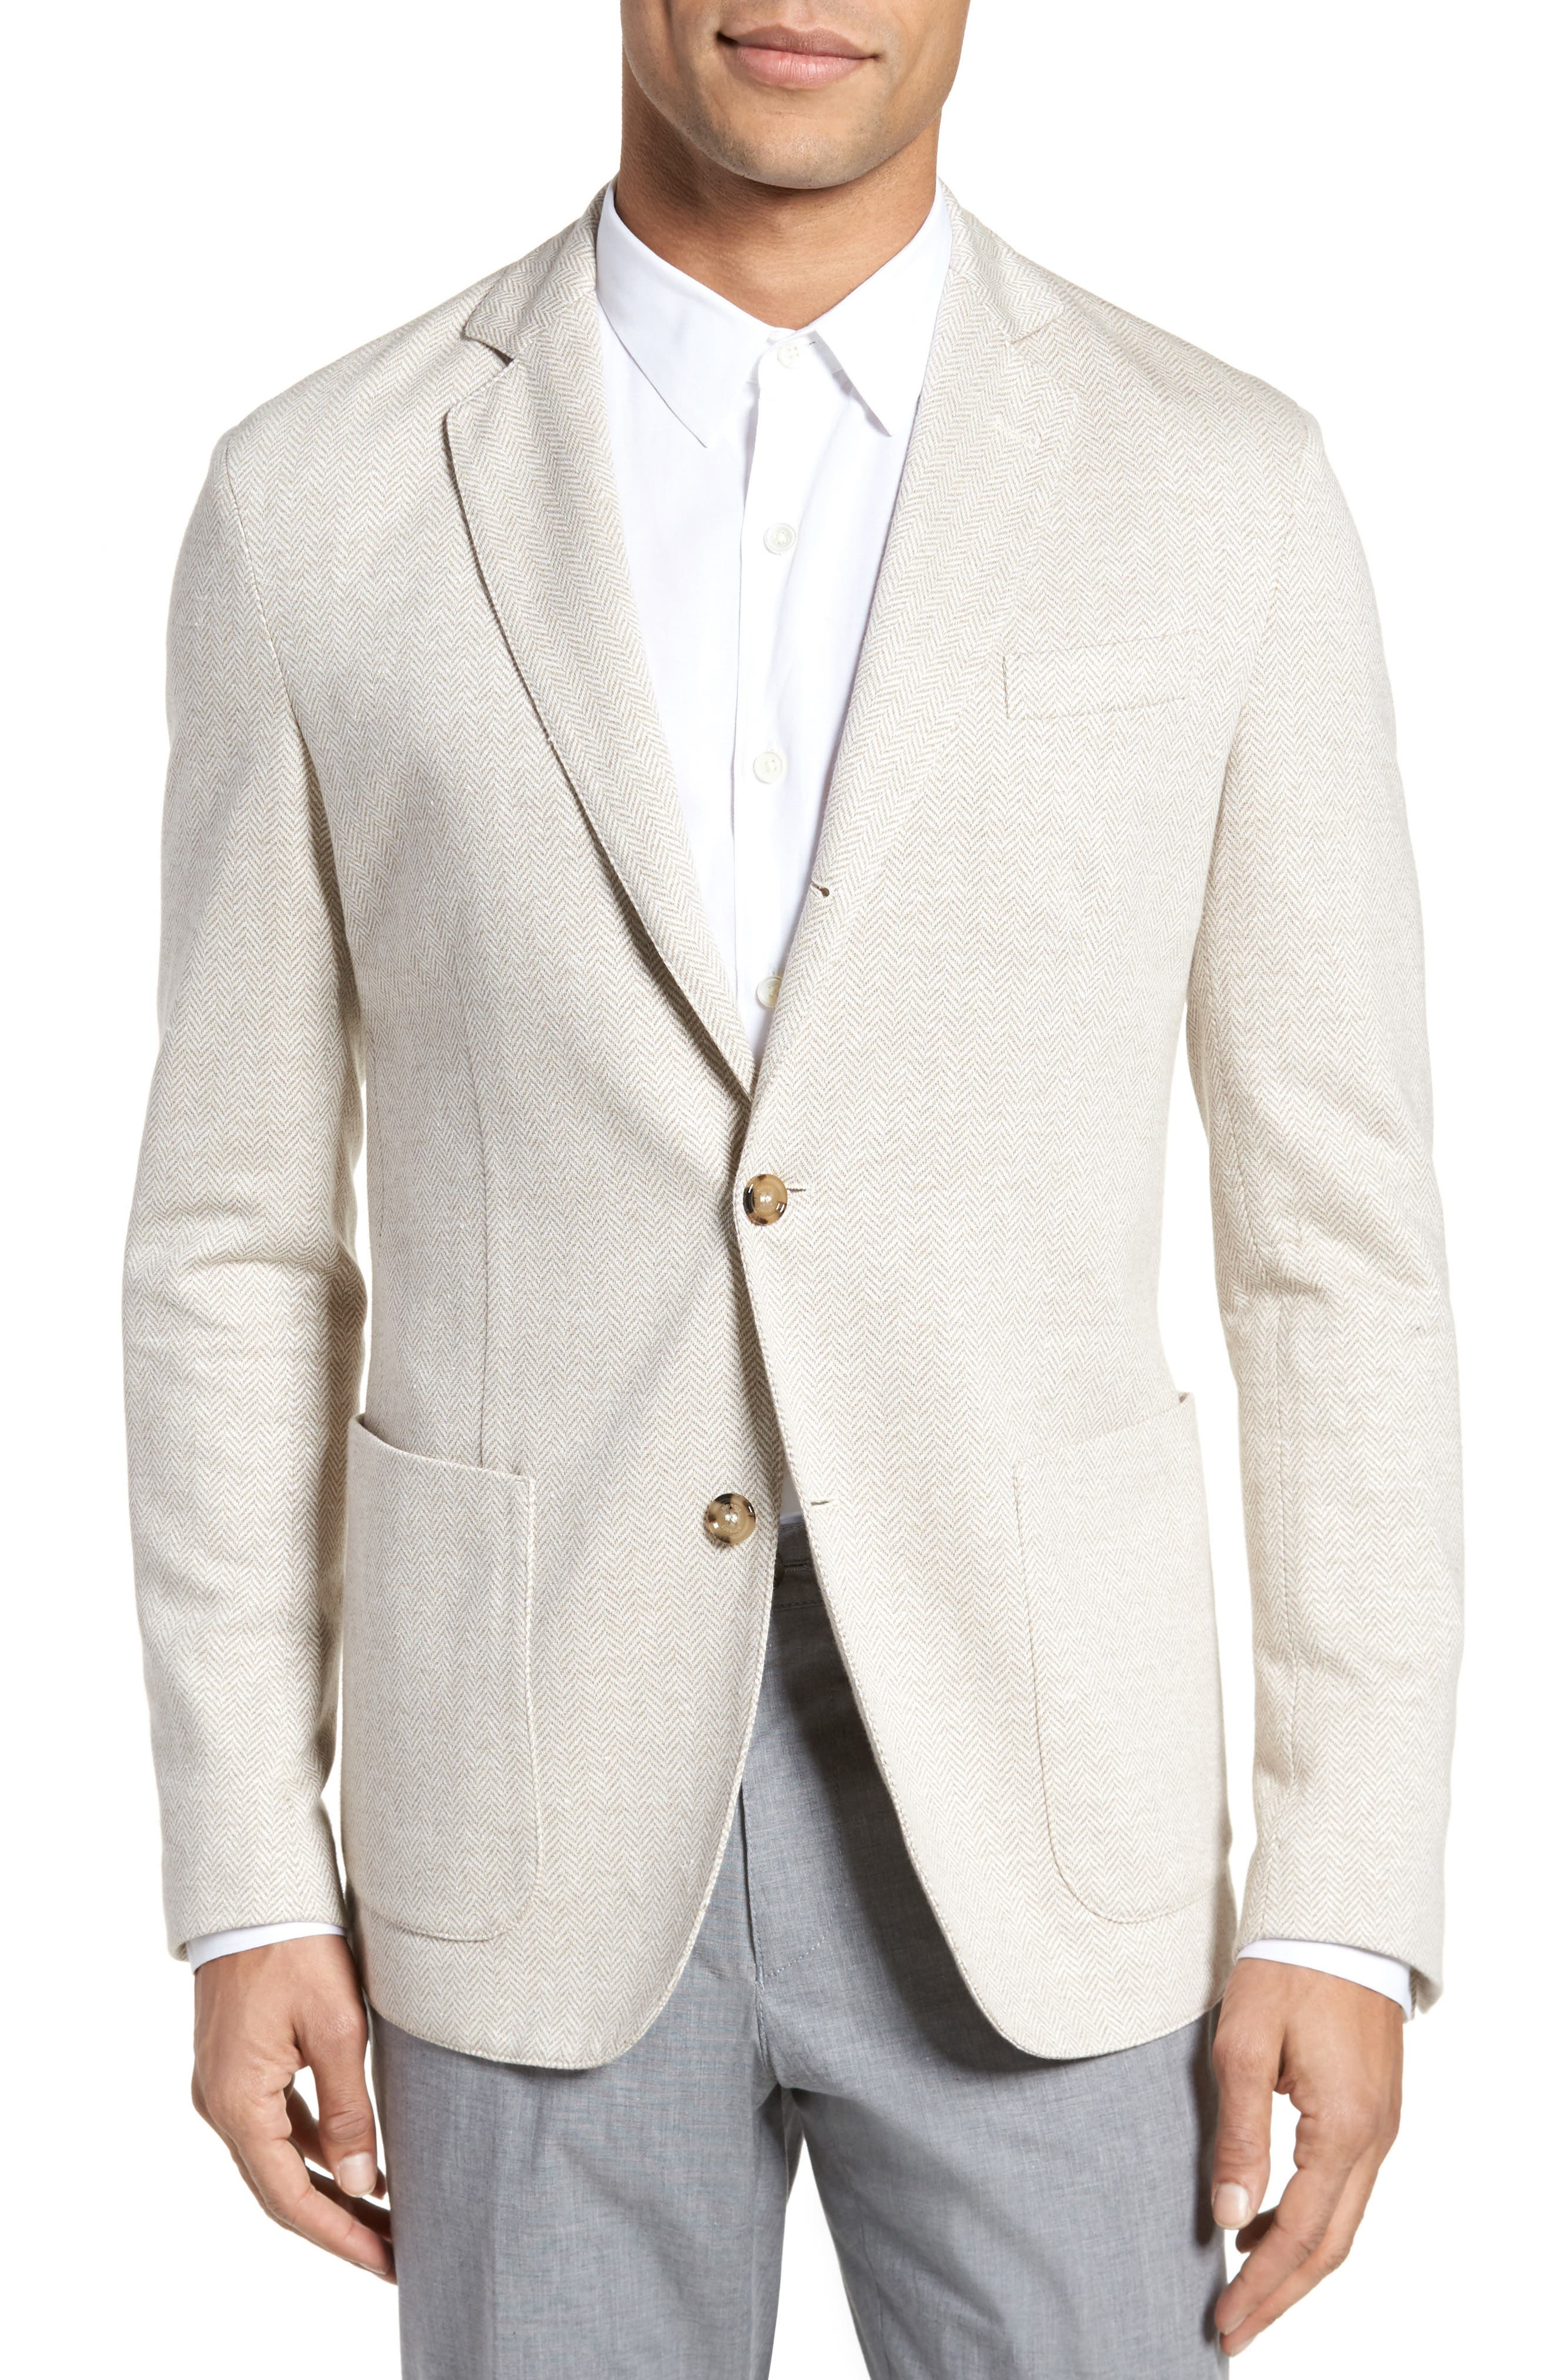 Trim Fit Herringbone Linen & Cotton Jacket,                             Main thumbnail 1, color,                             Sand